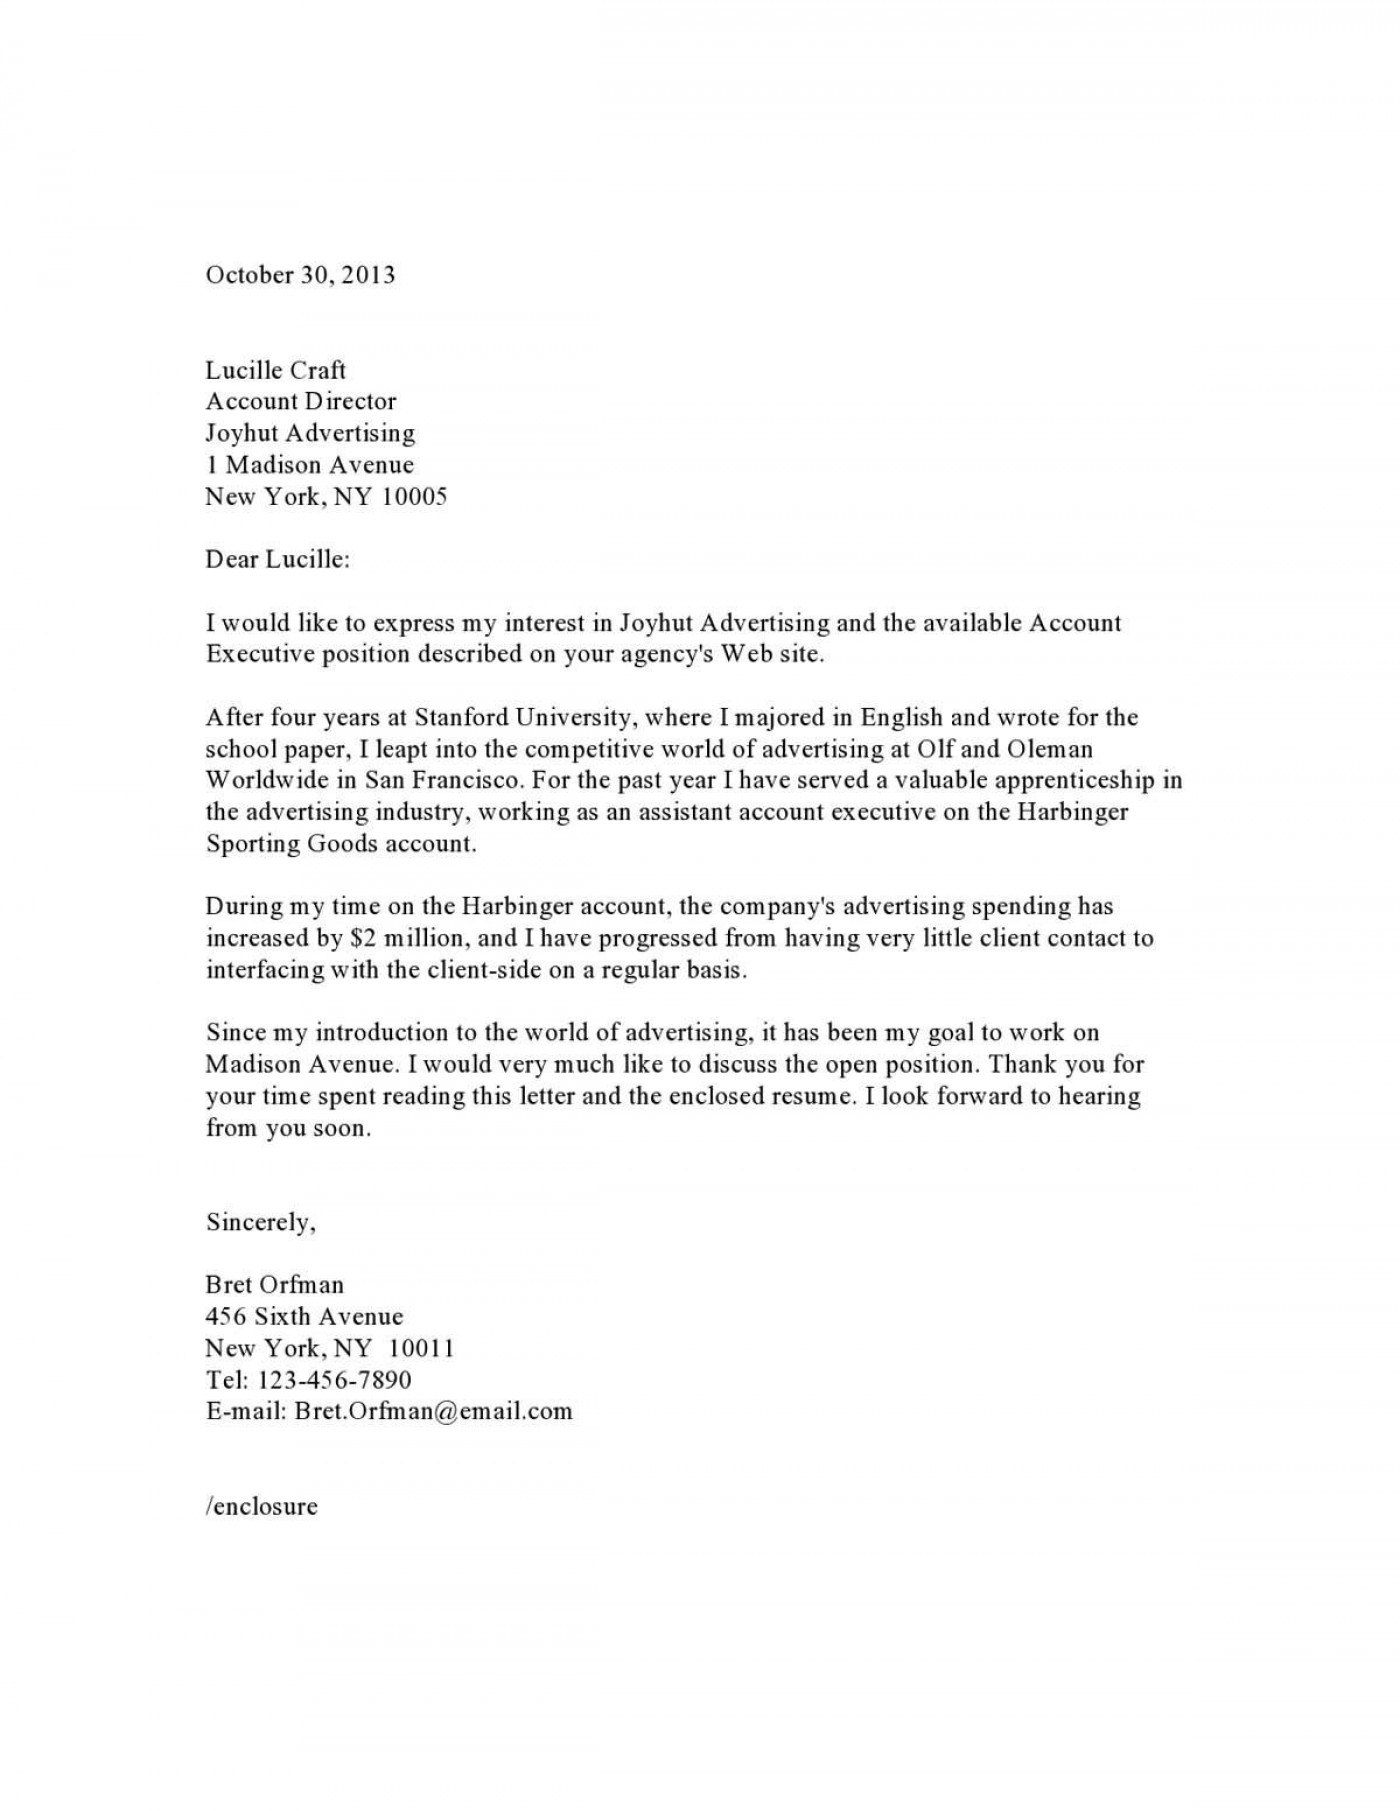 005 Stirring Generic Cover Letter For Resume High Resolution  General Example1400